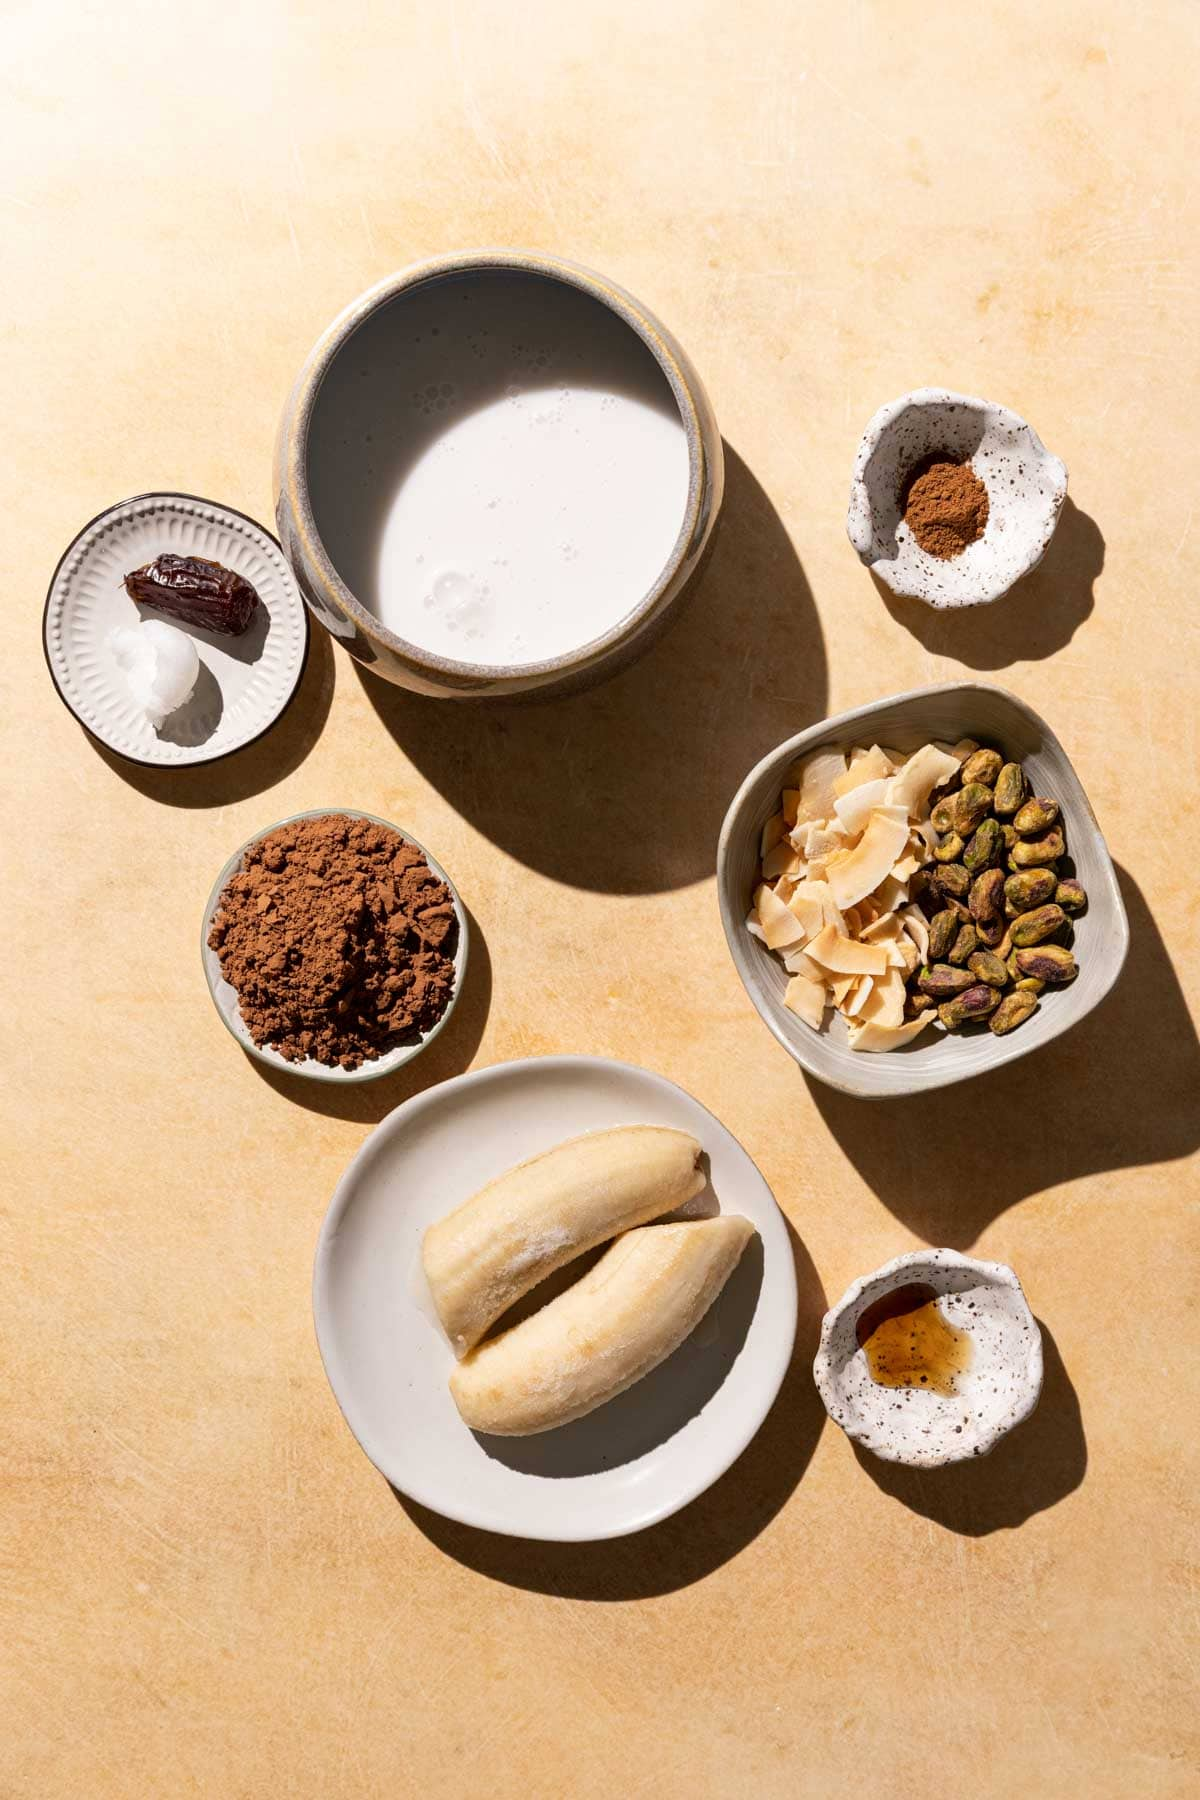 Ingredients for Chocolate Coconut smoothie in bowls on a yellow background